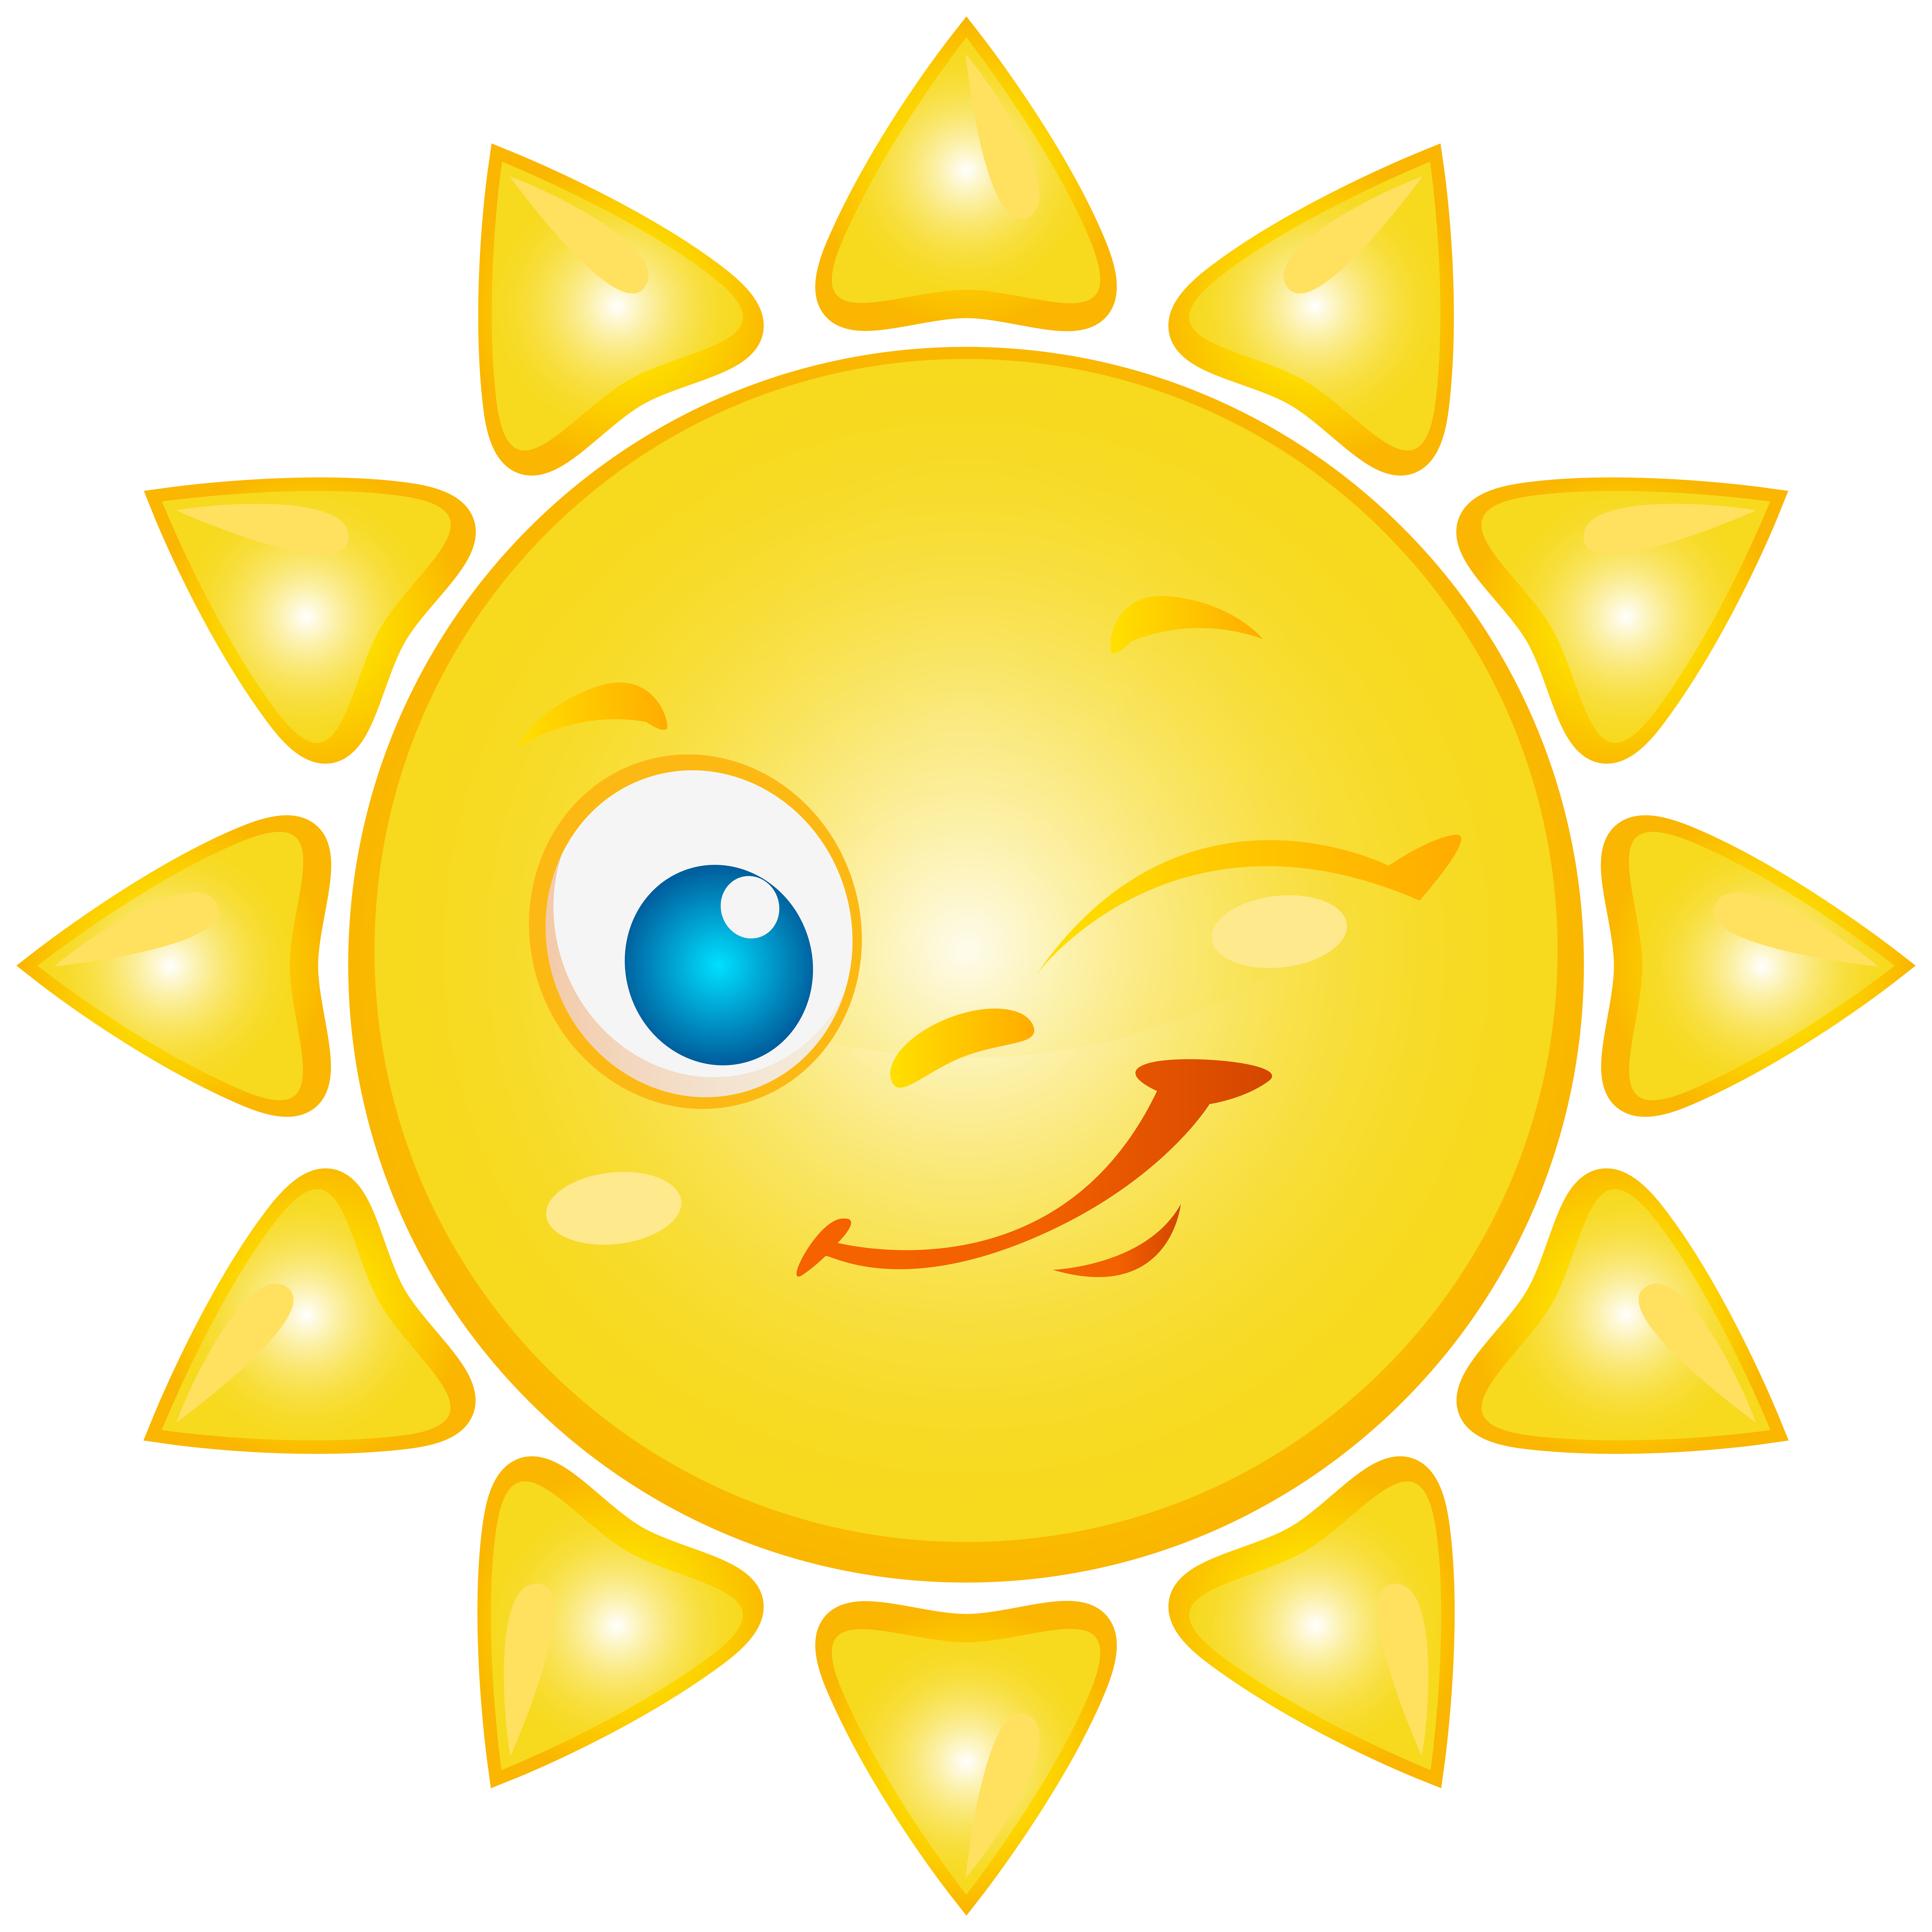 Sun cartoon clipart clip library download Sun Cartoon PNG Clip Art Image | Gallery Yopriceville - High ... clip library download